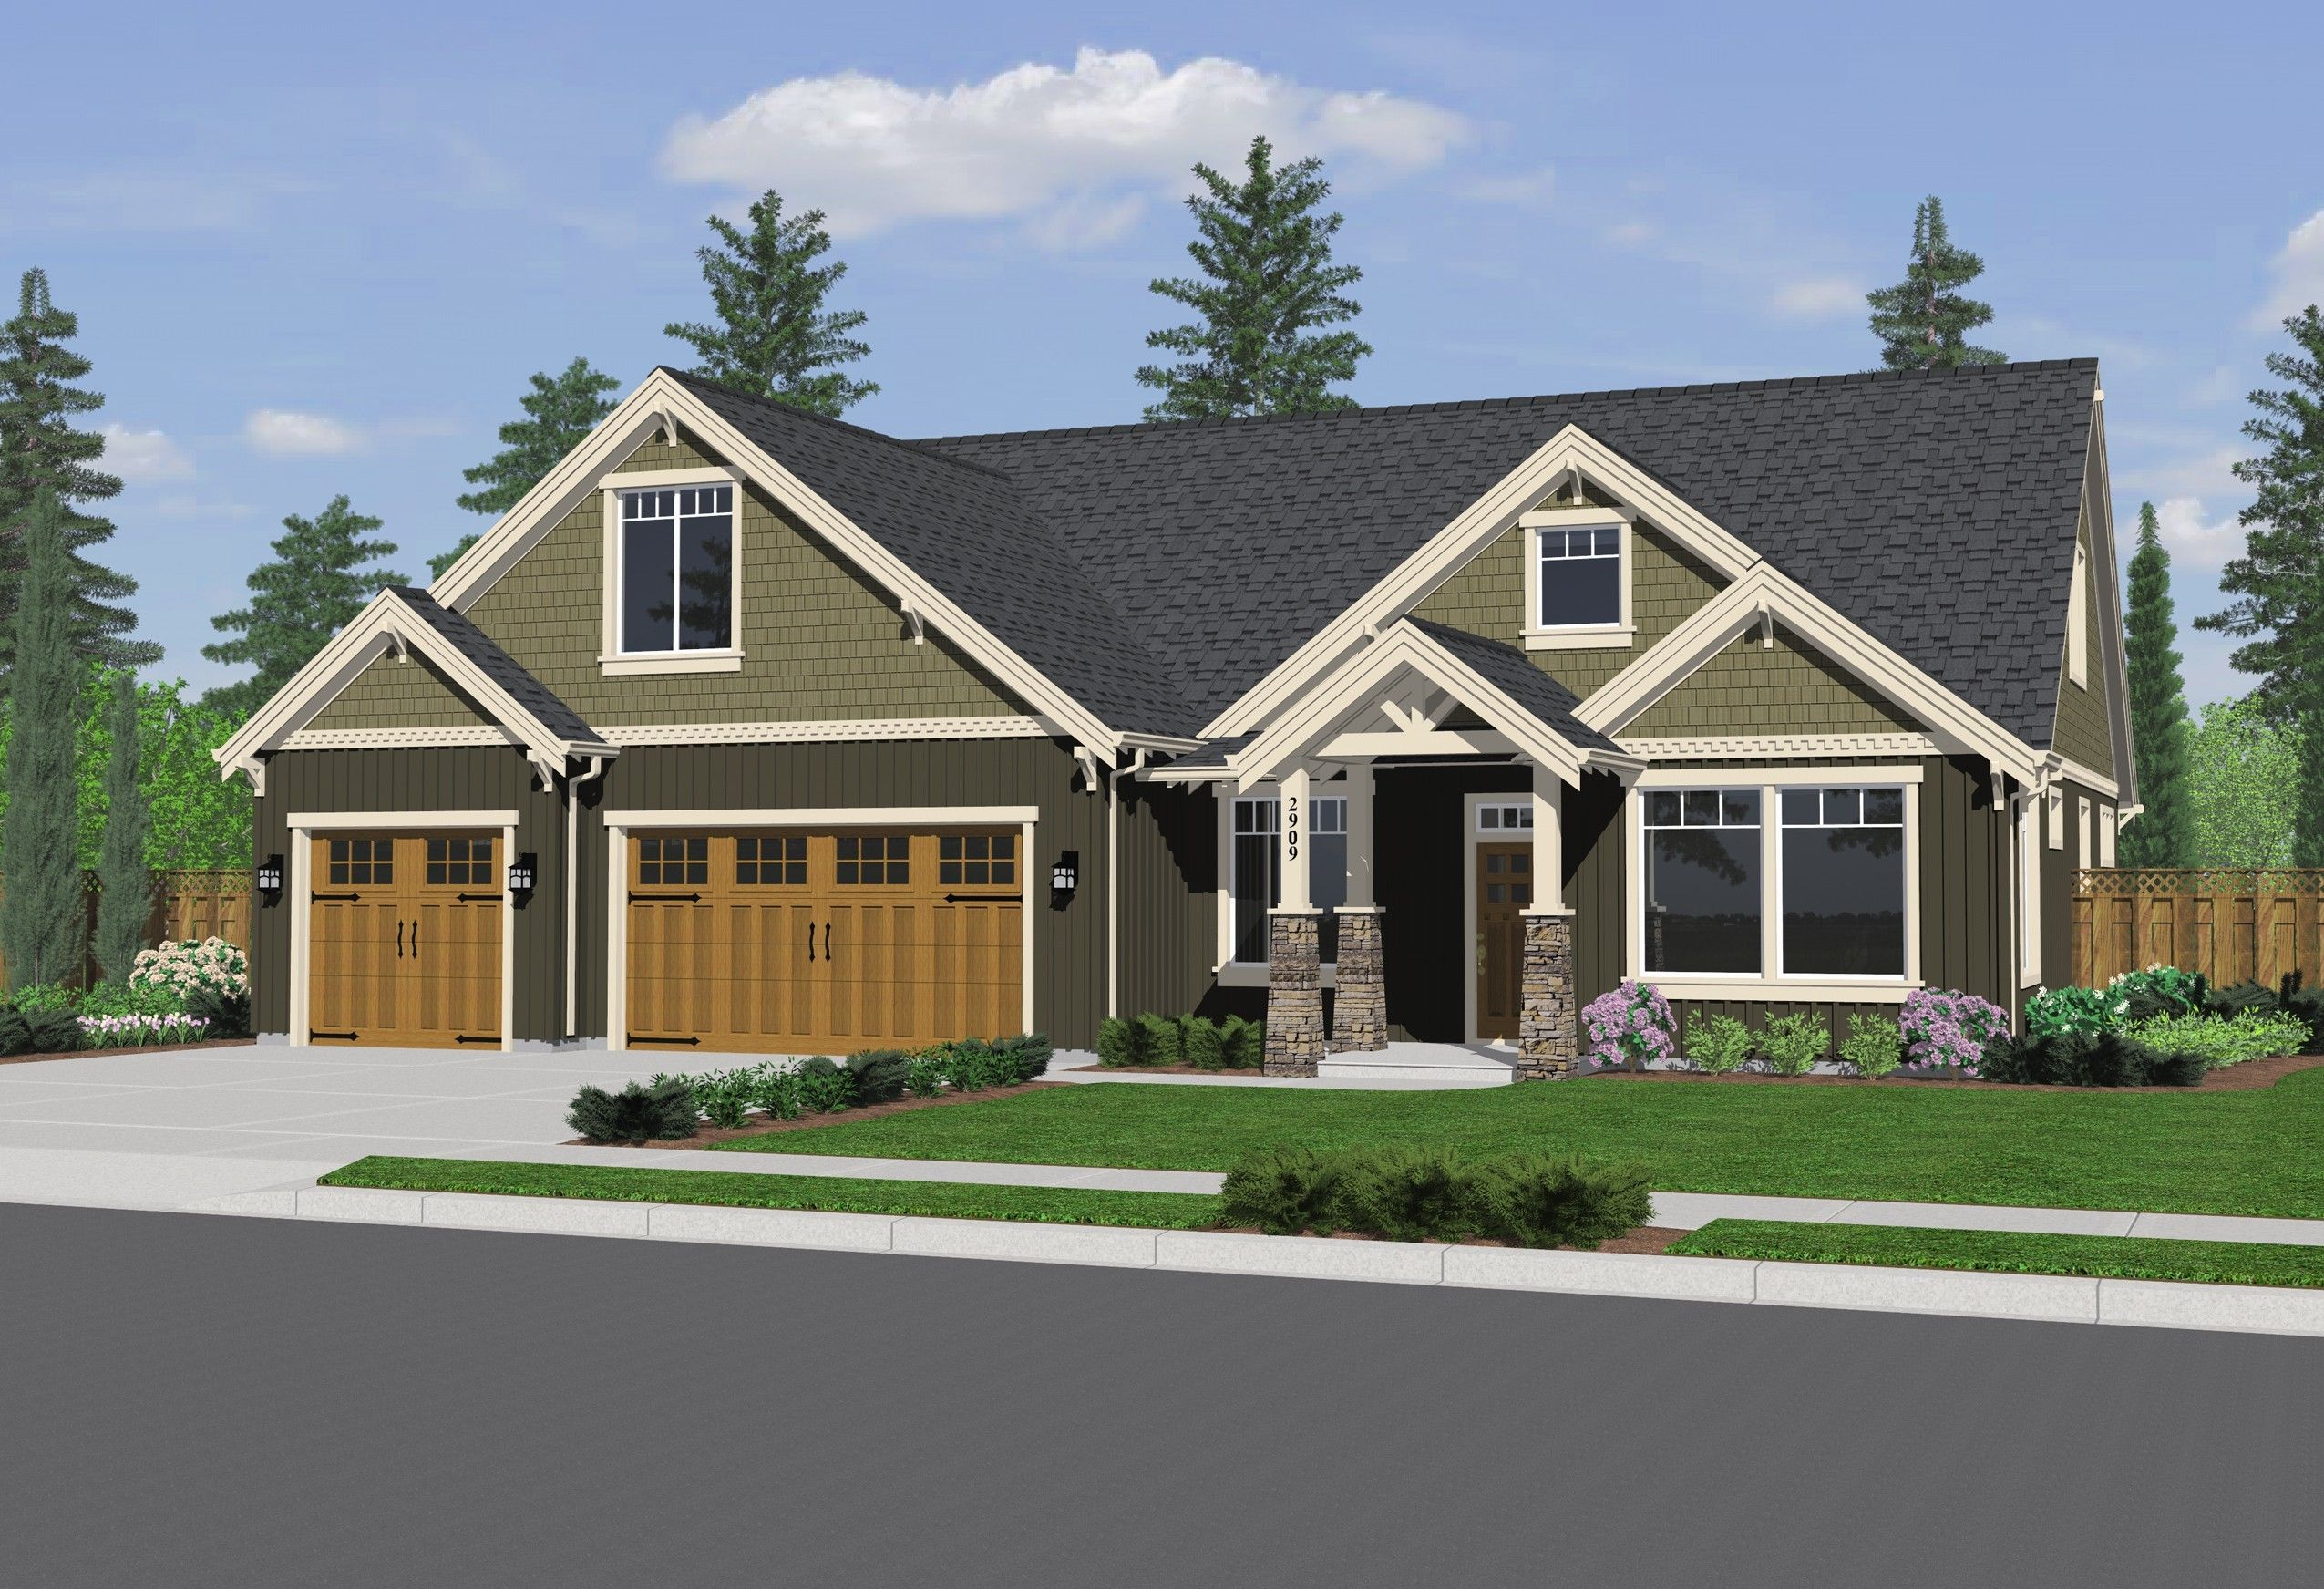 house 3 car garage plans - Small House Plans With 3 Car Garage